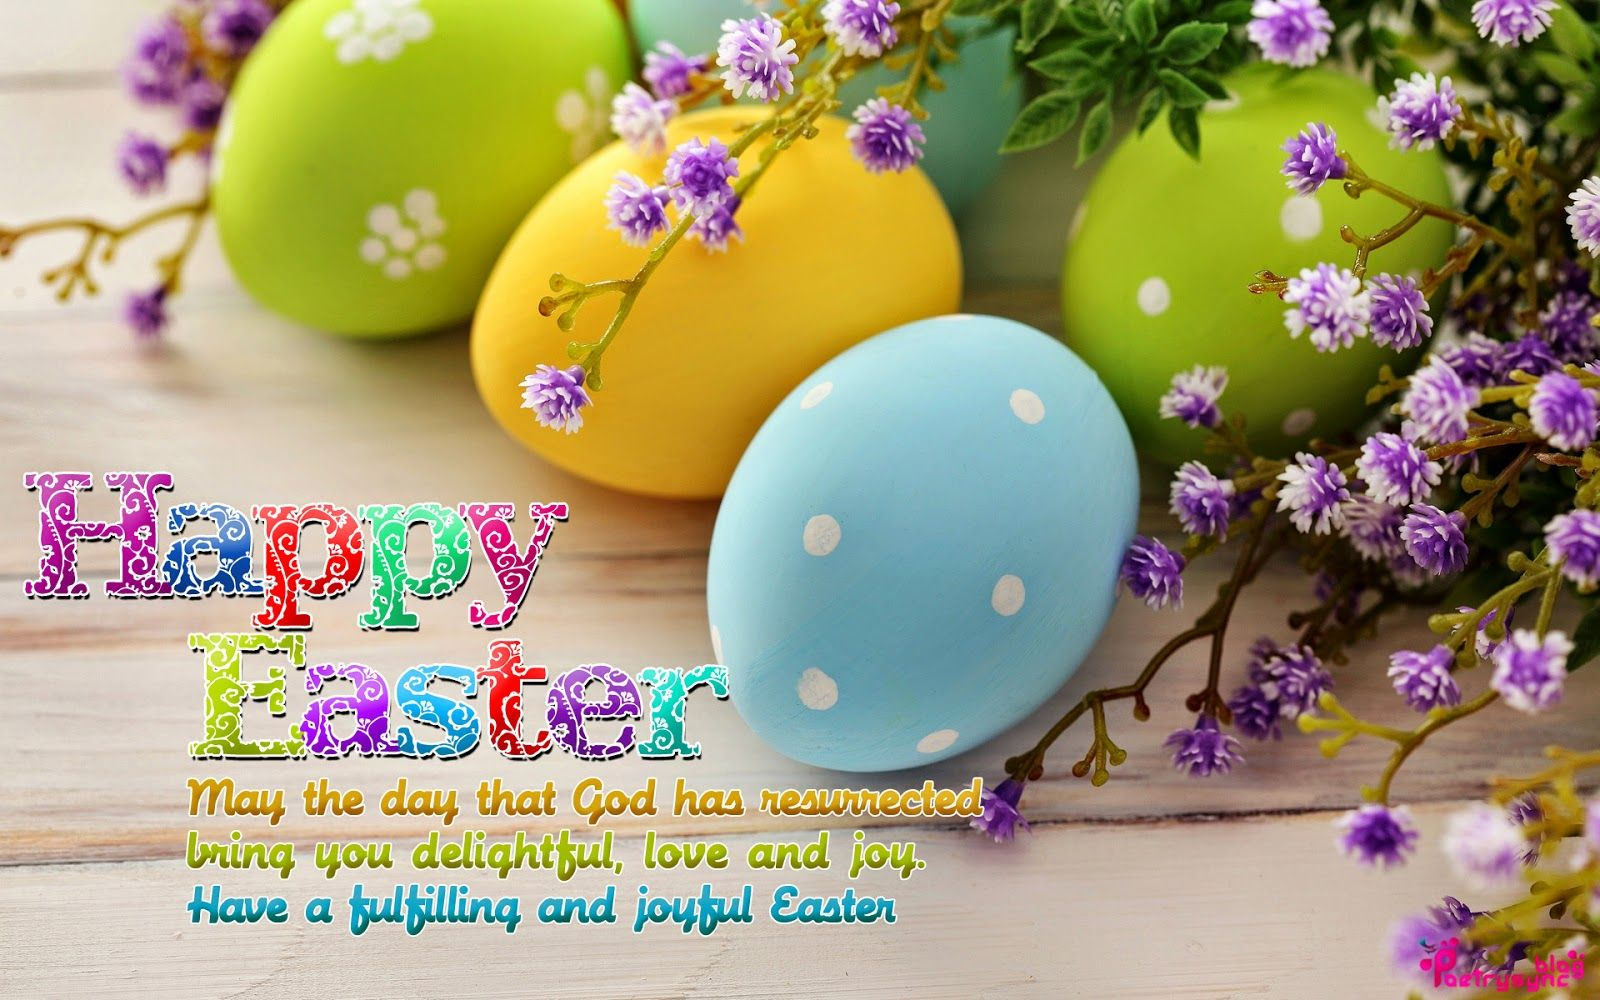 Happy easter wishes easter day pinterest happy easter happy easter wishes easter day pinterest happy easter easter and easter quote kristyandbryce Image collections